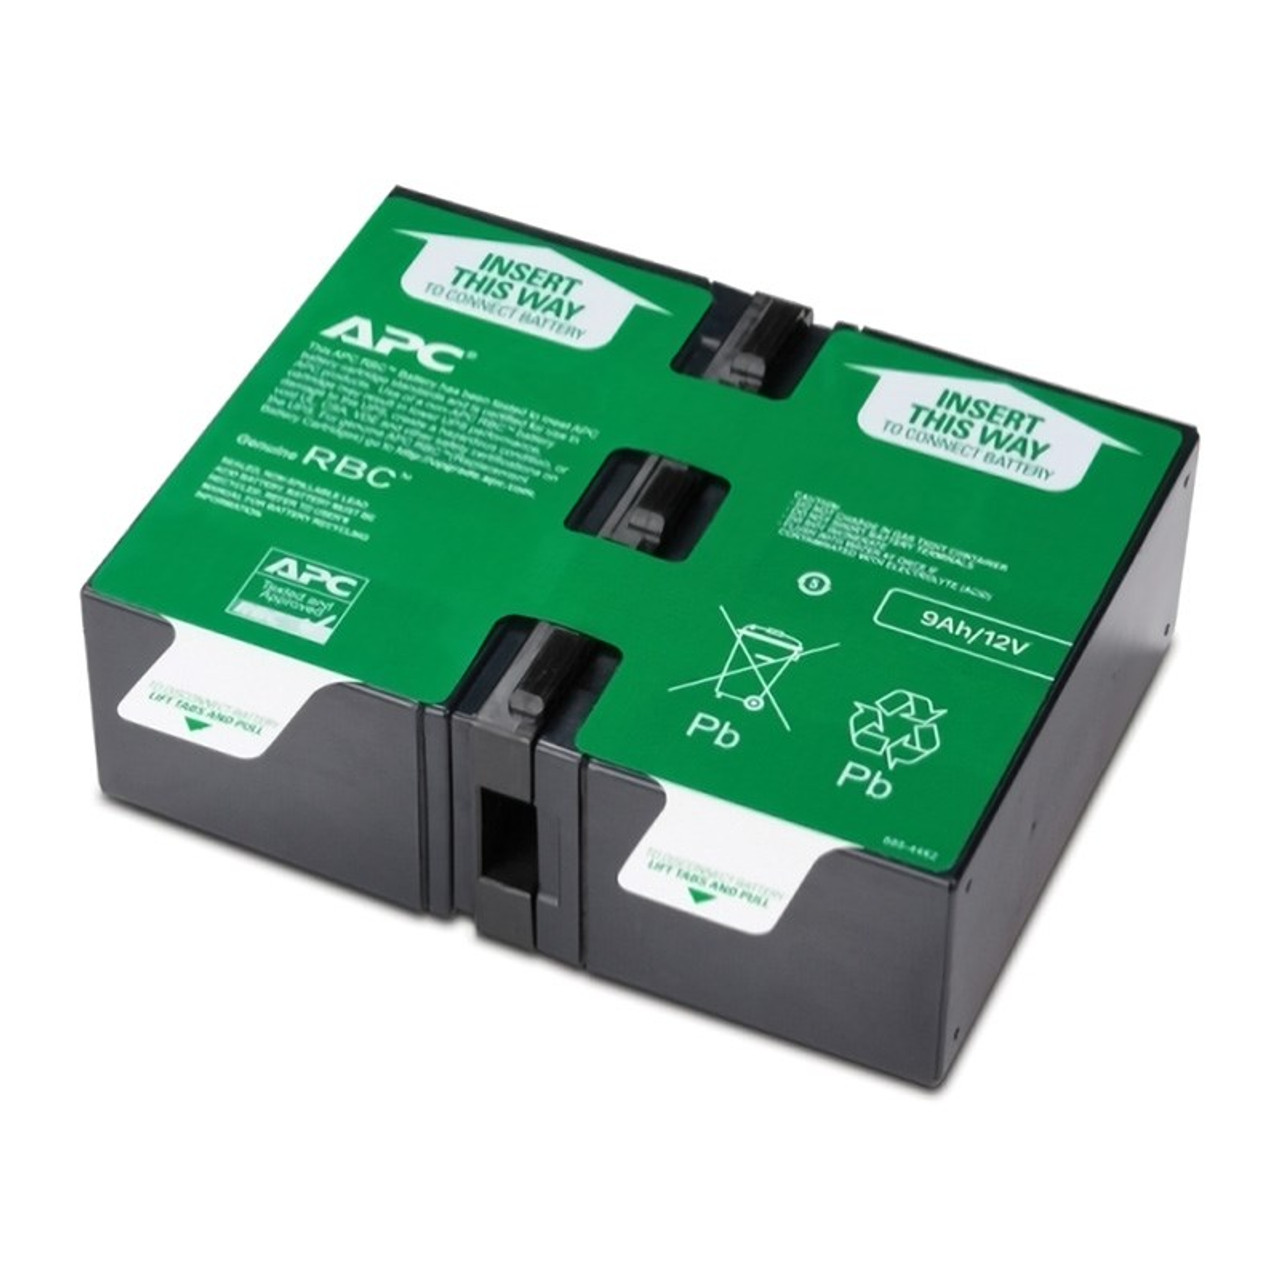 Image for APC Replacement Battery Cartridge #124 UPS Battery CX Computer Superstore